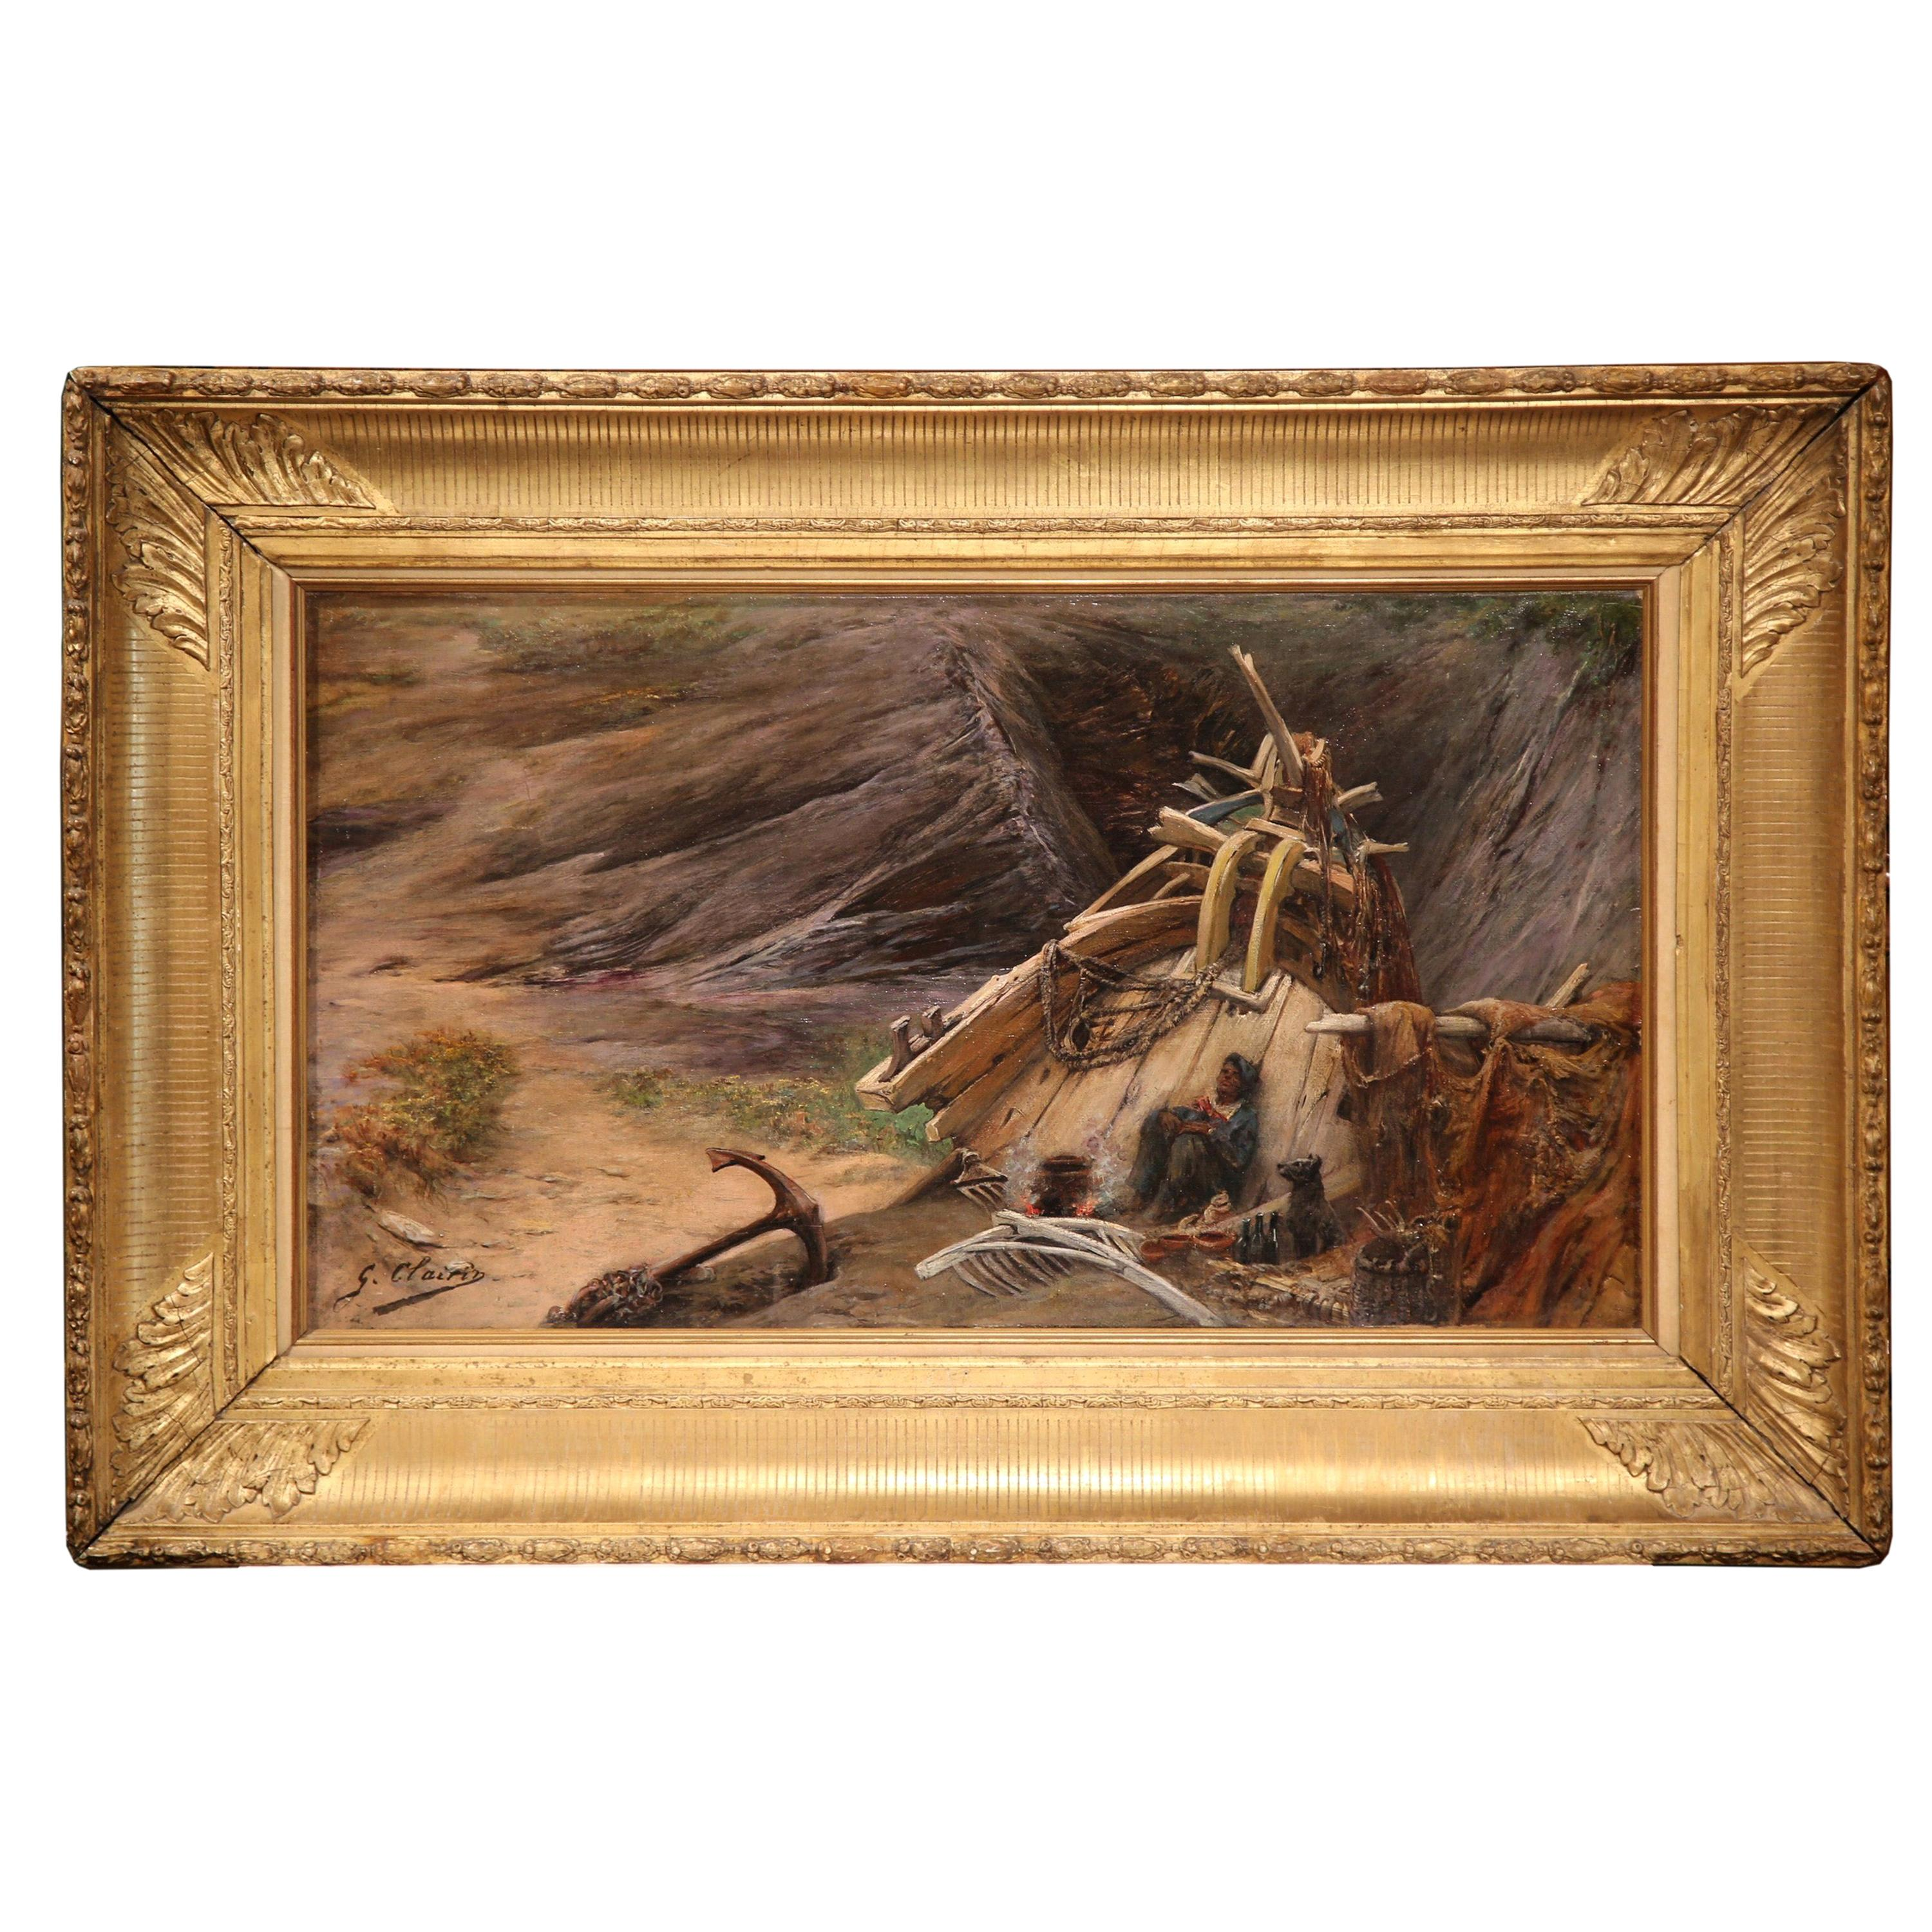 19th Century French Oil on Canvas Painting in Gilt Frame Signed Georges Clairin